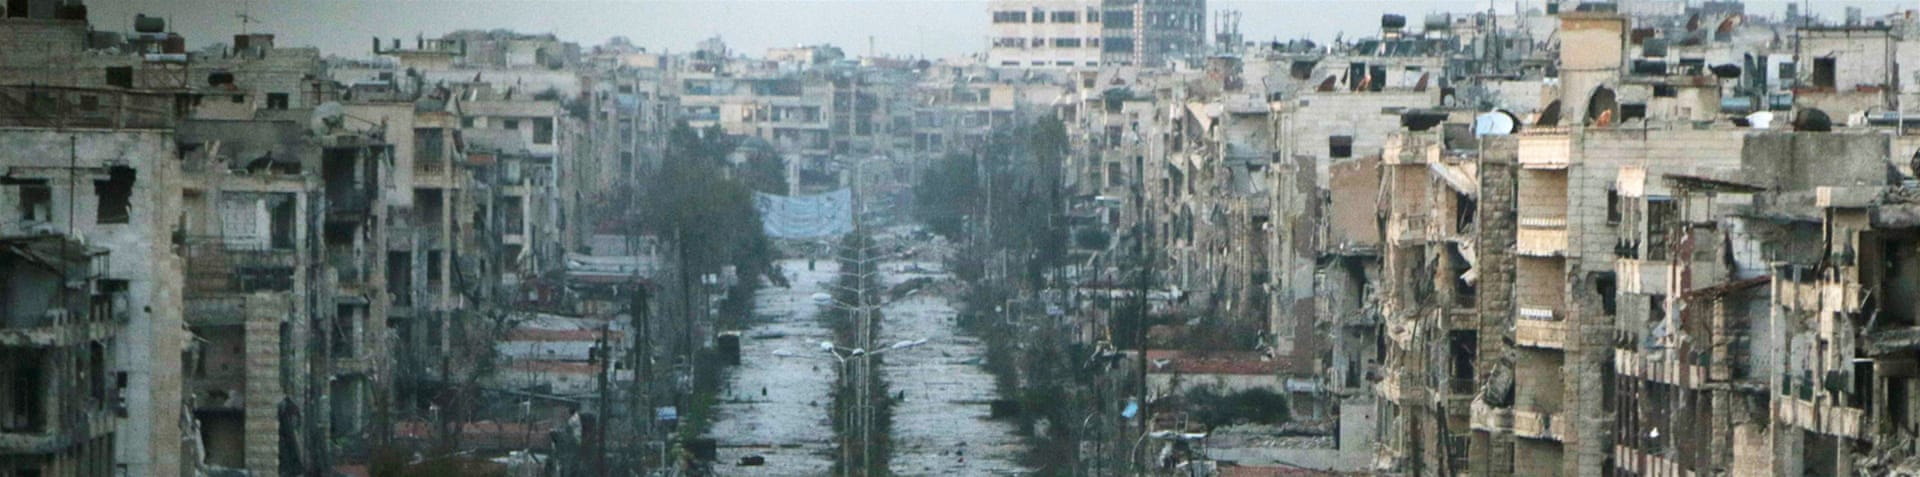 Almost 2 million people in Aleppo have been without running water for nearly two weeks [Reuters]